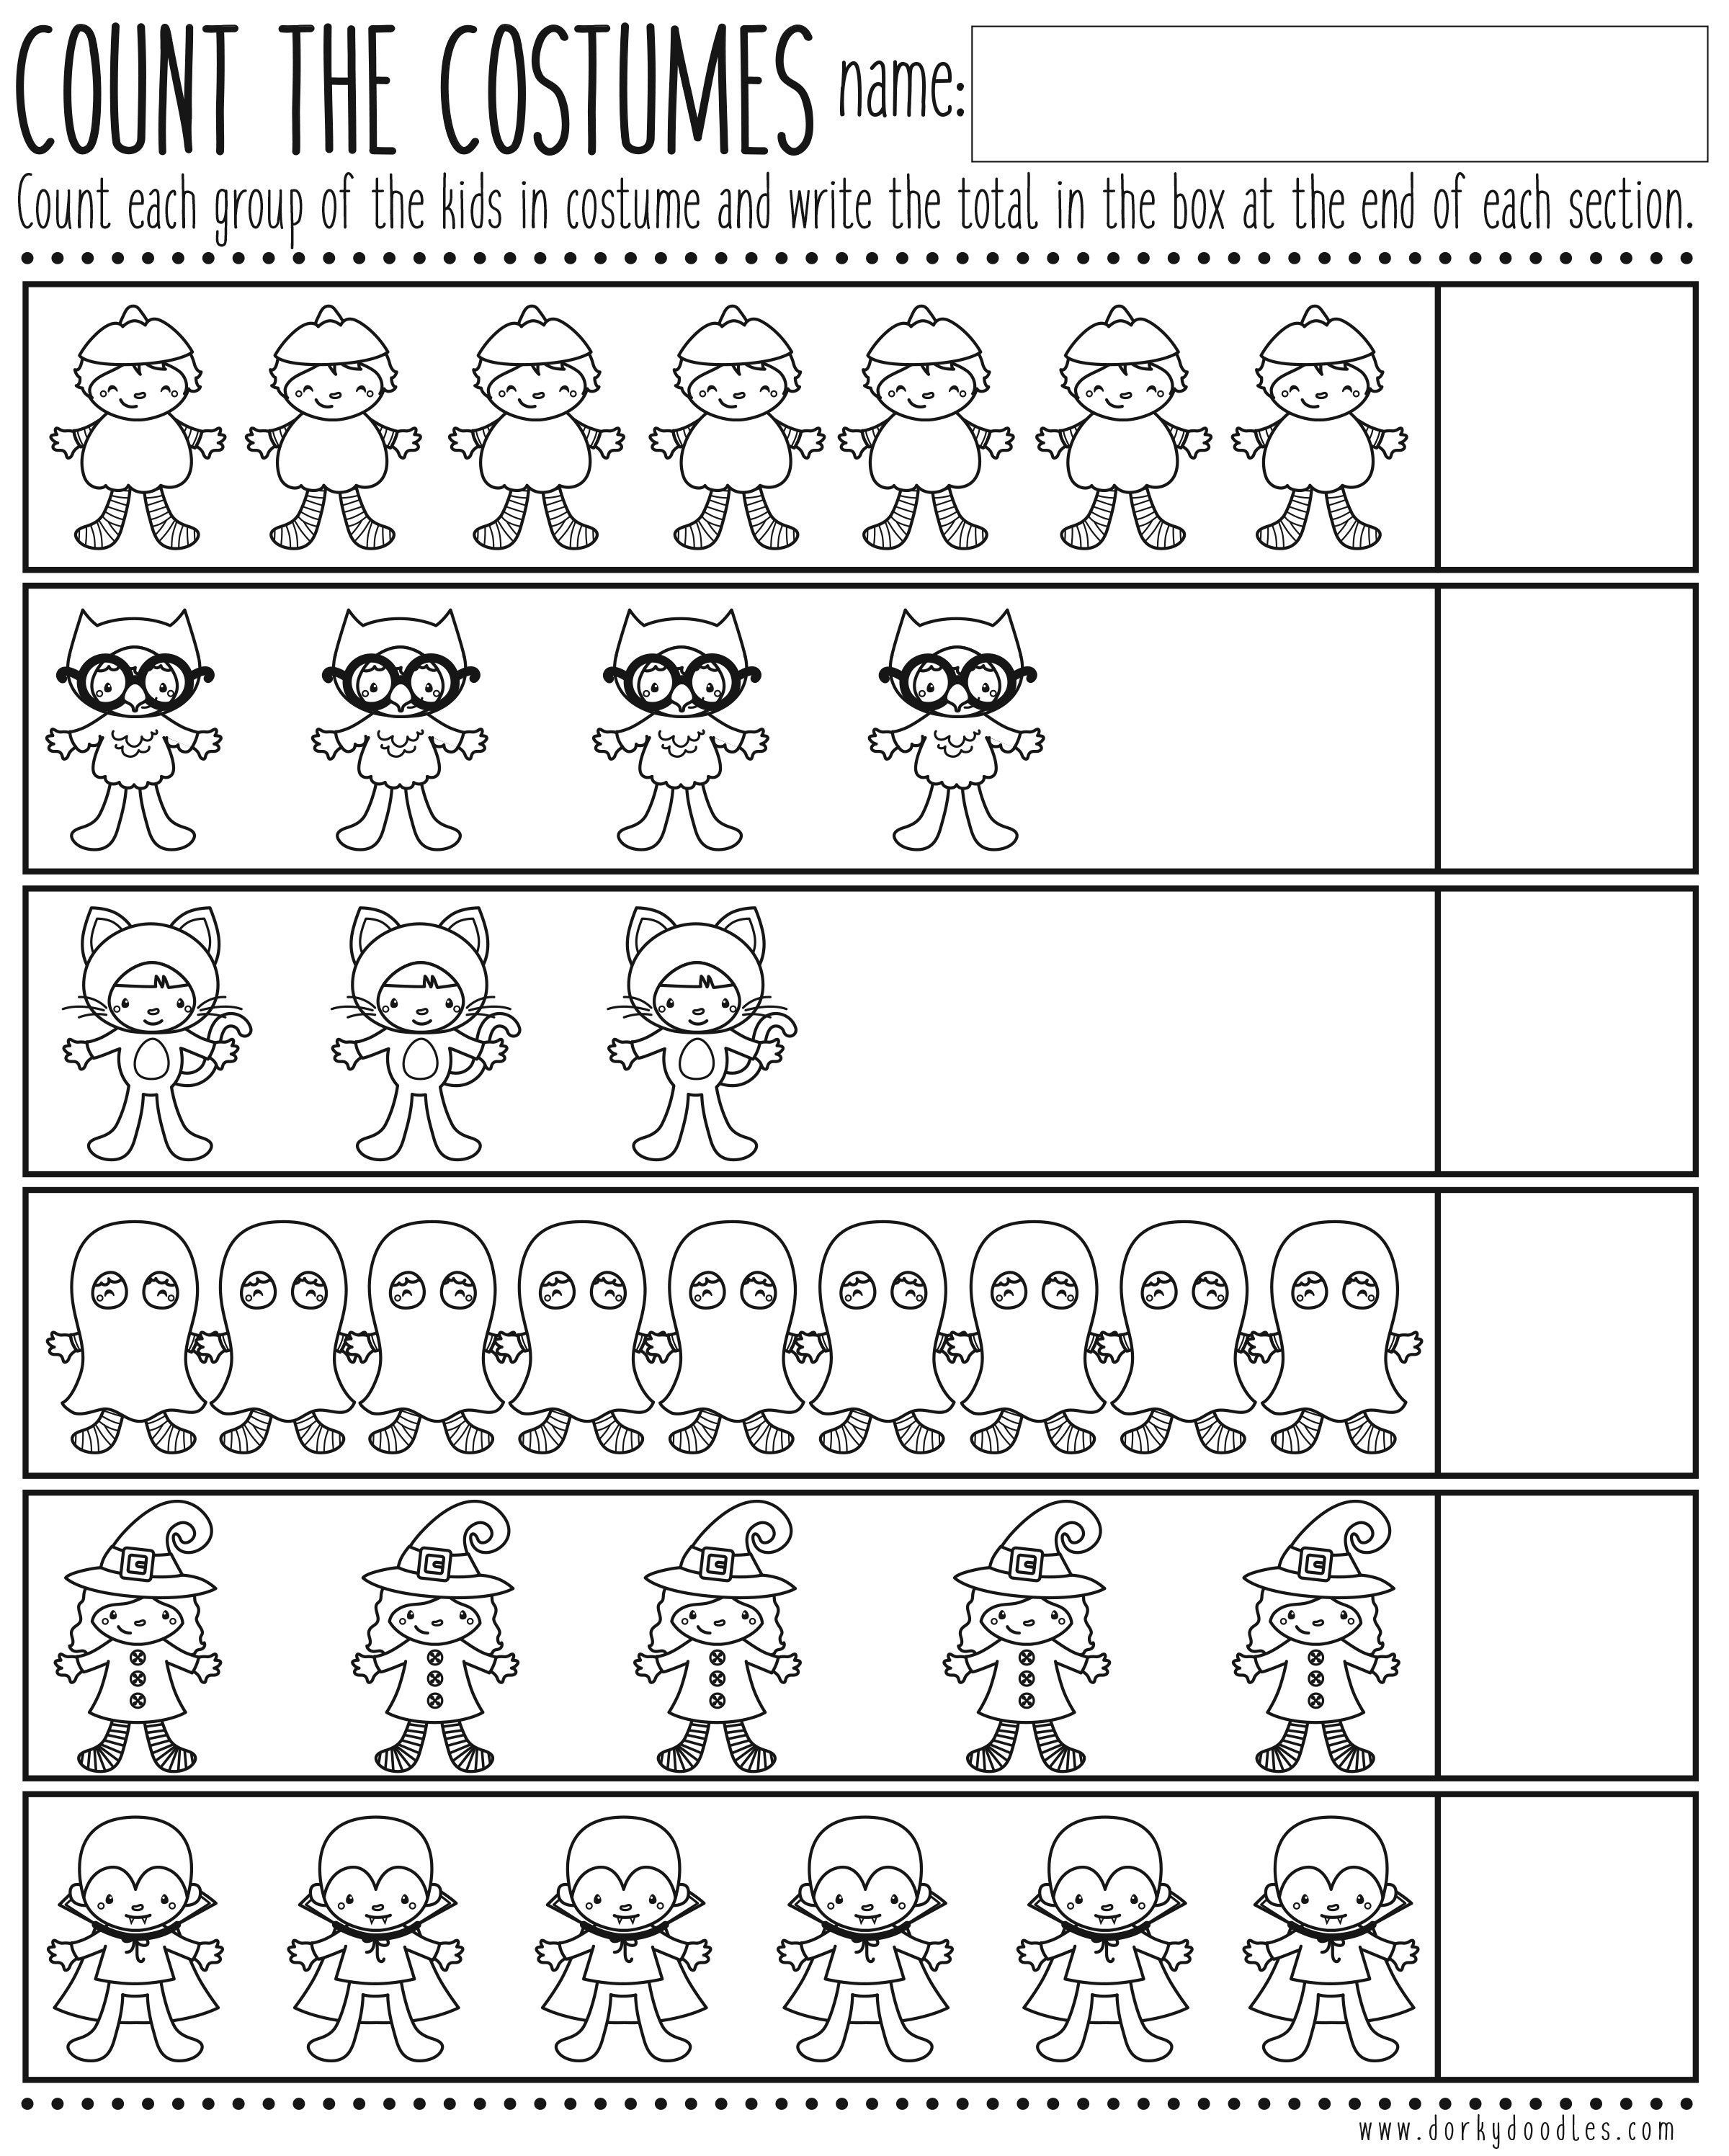 Count The Costumes Printable Worksheet Kindergarten Fall Teacher Counting Worksheets For Kindergarten Education Quotes For Teachers Kindergarten Worksheets